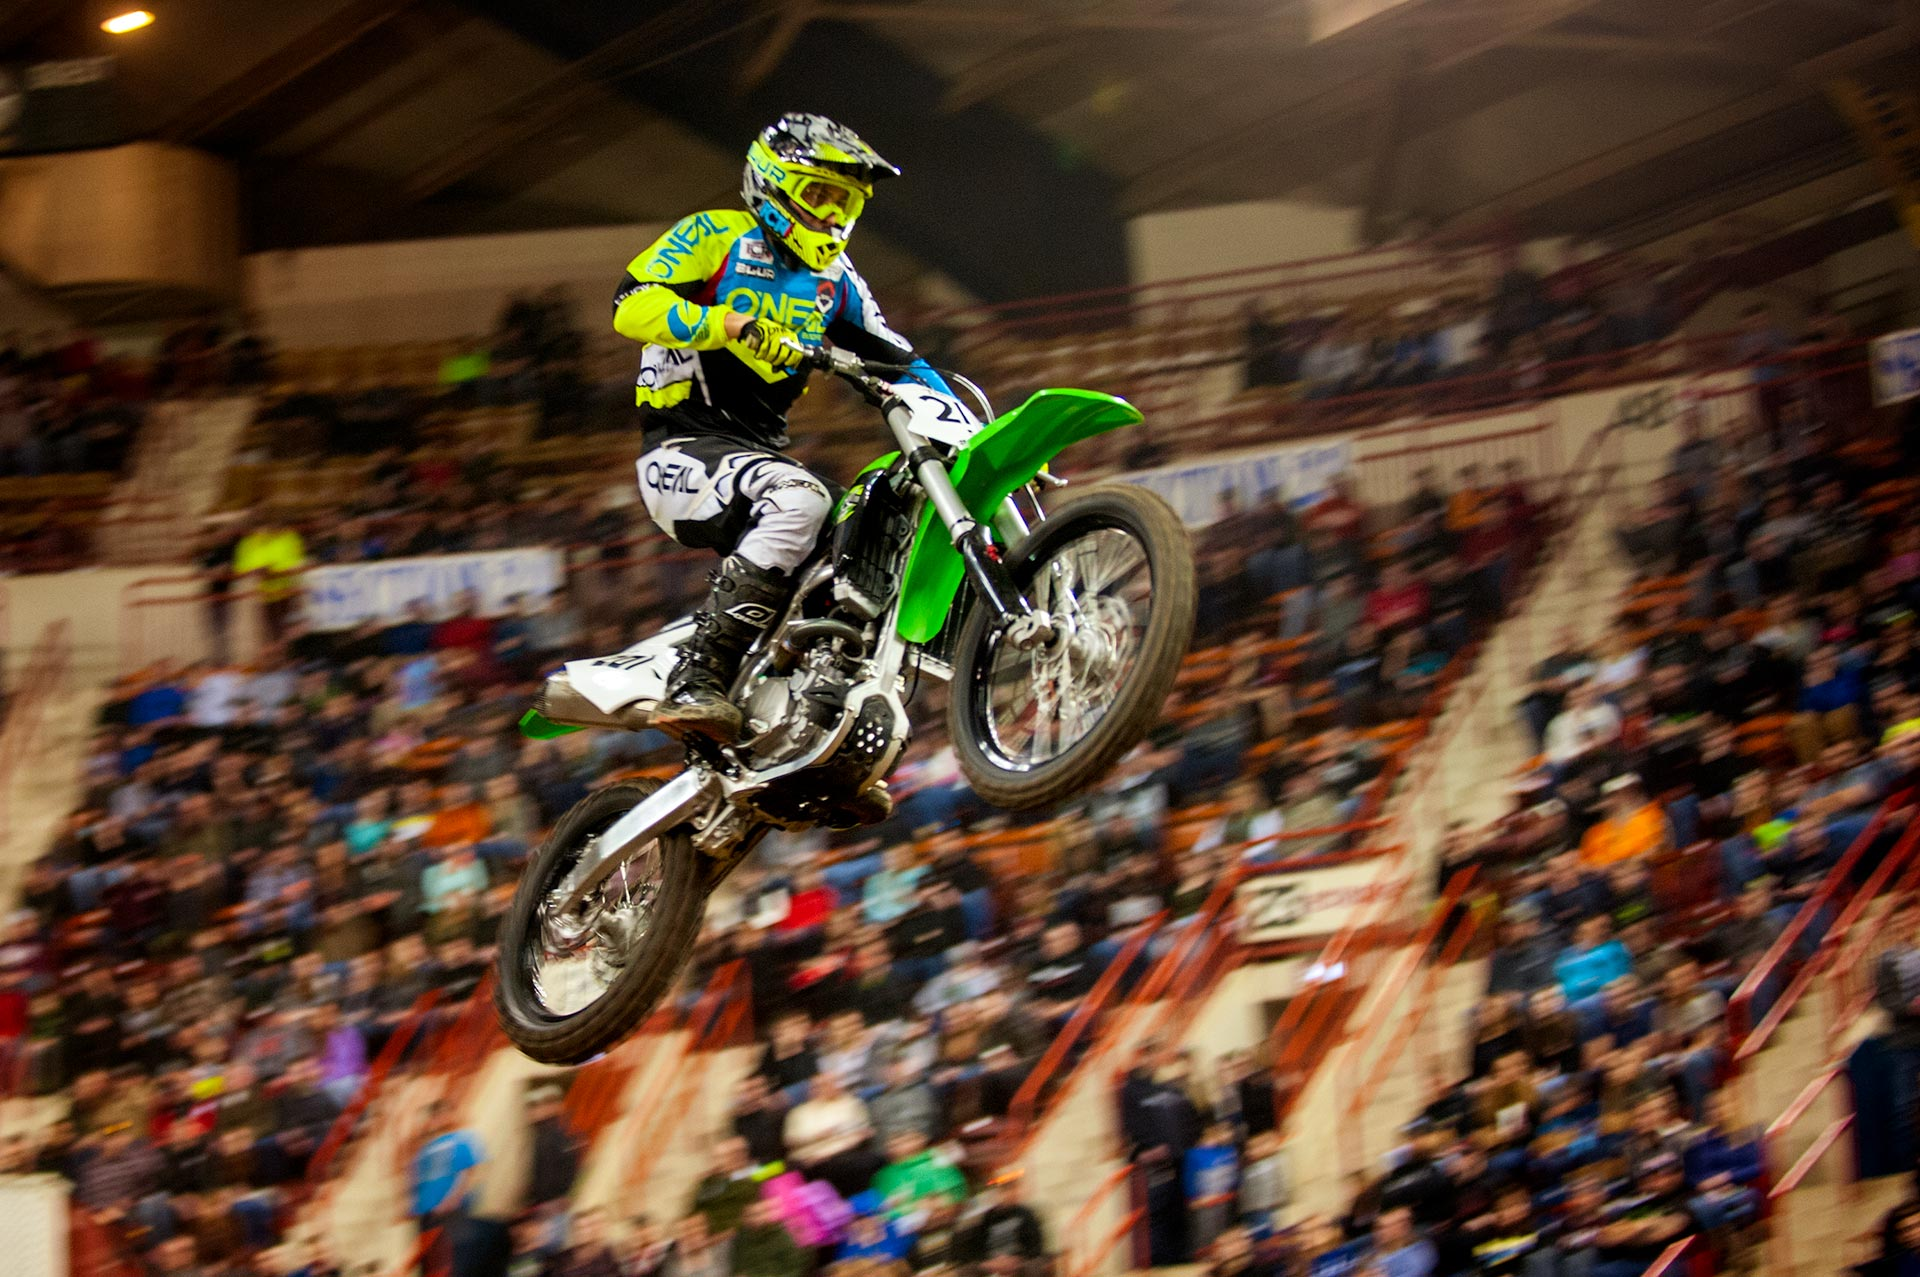 A bike flying through the air at the arenacross races at Motorama 2018